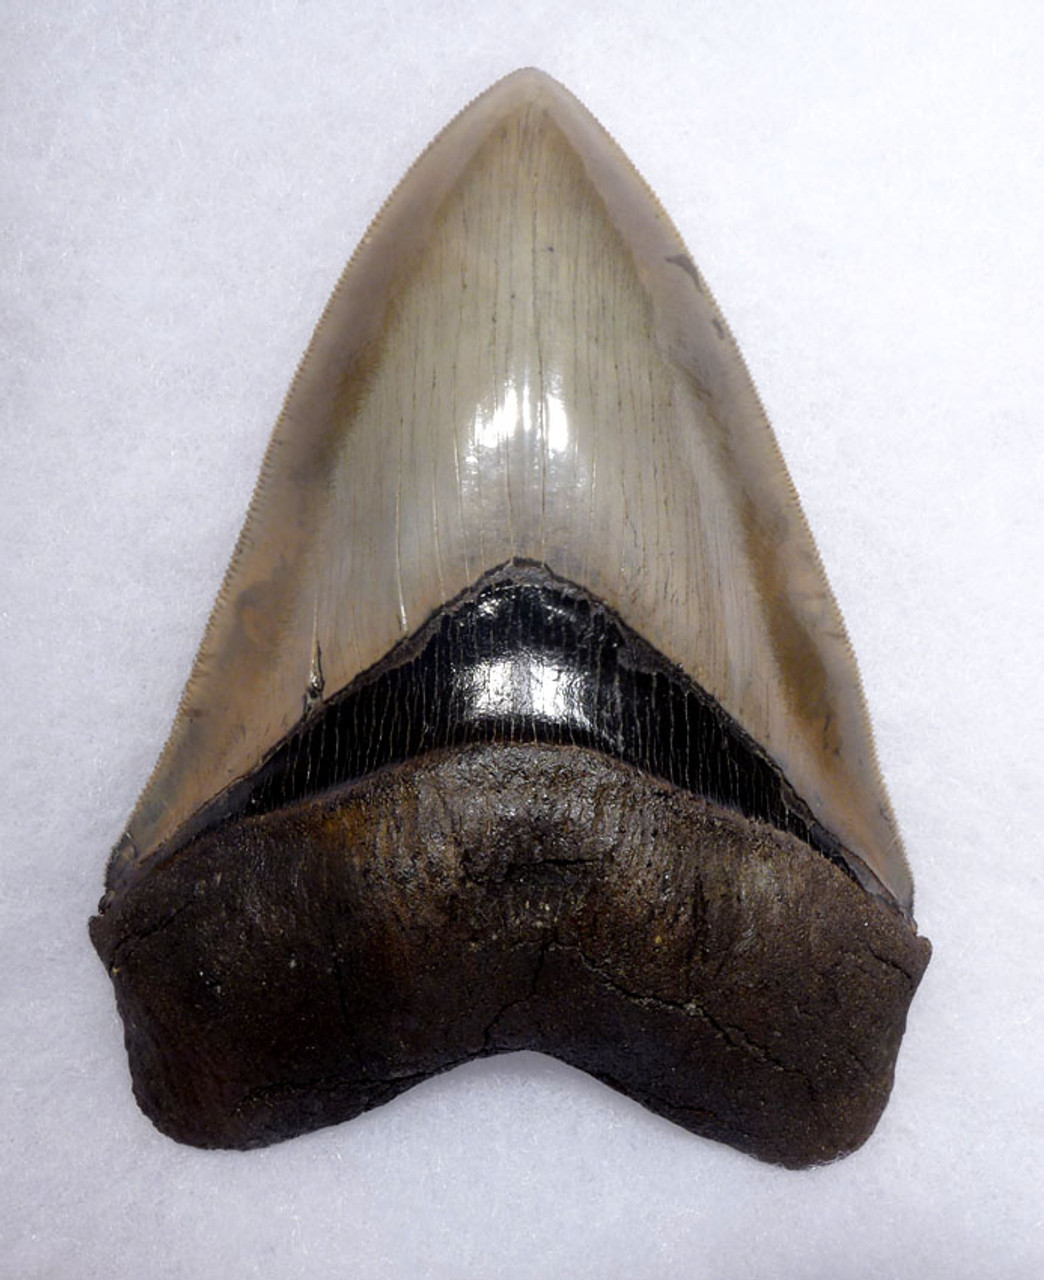 LARGE MEGALODON SHARK TOOTH 5.25 INCH COLLECTOR GRADE WITH STRONG CHATOYANCE *SH6-411